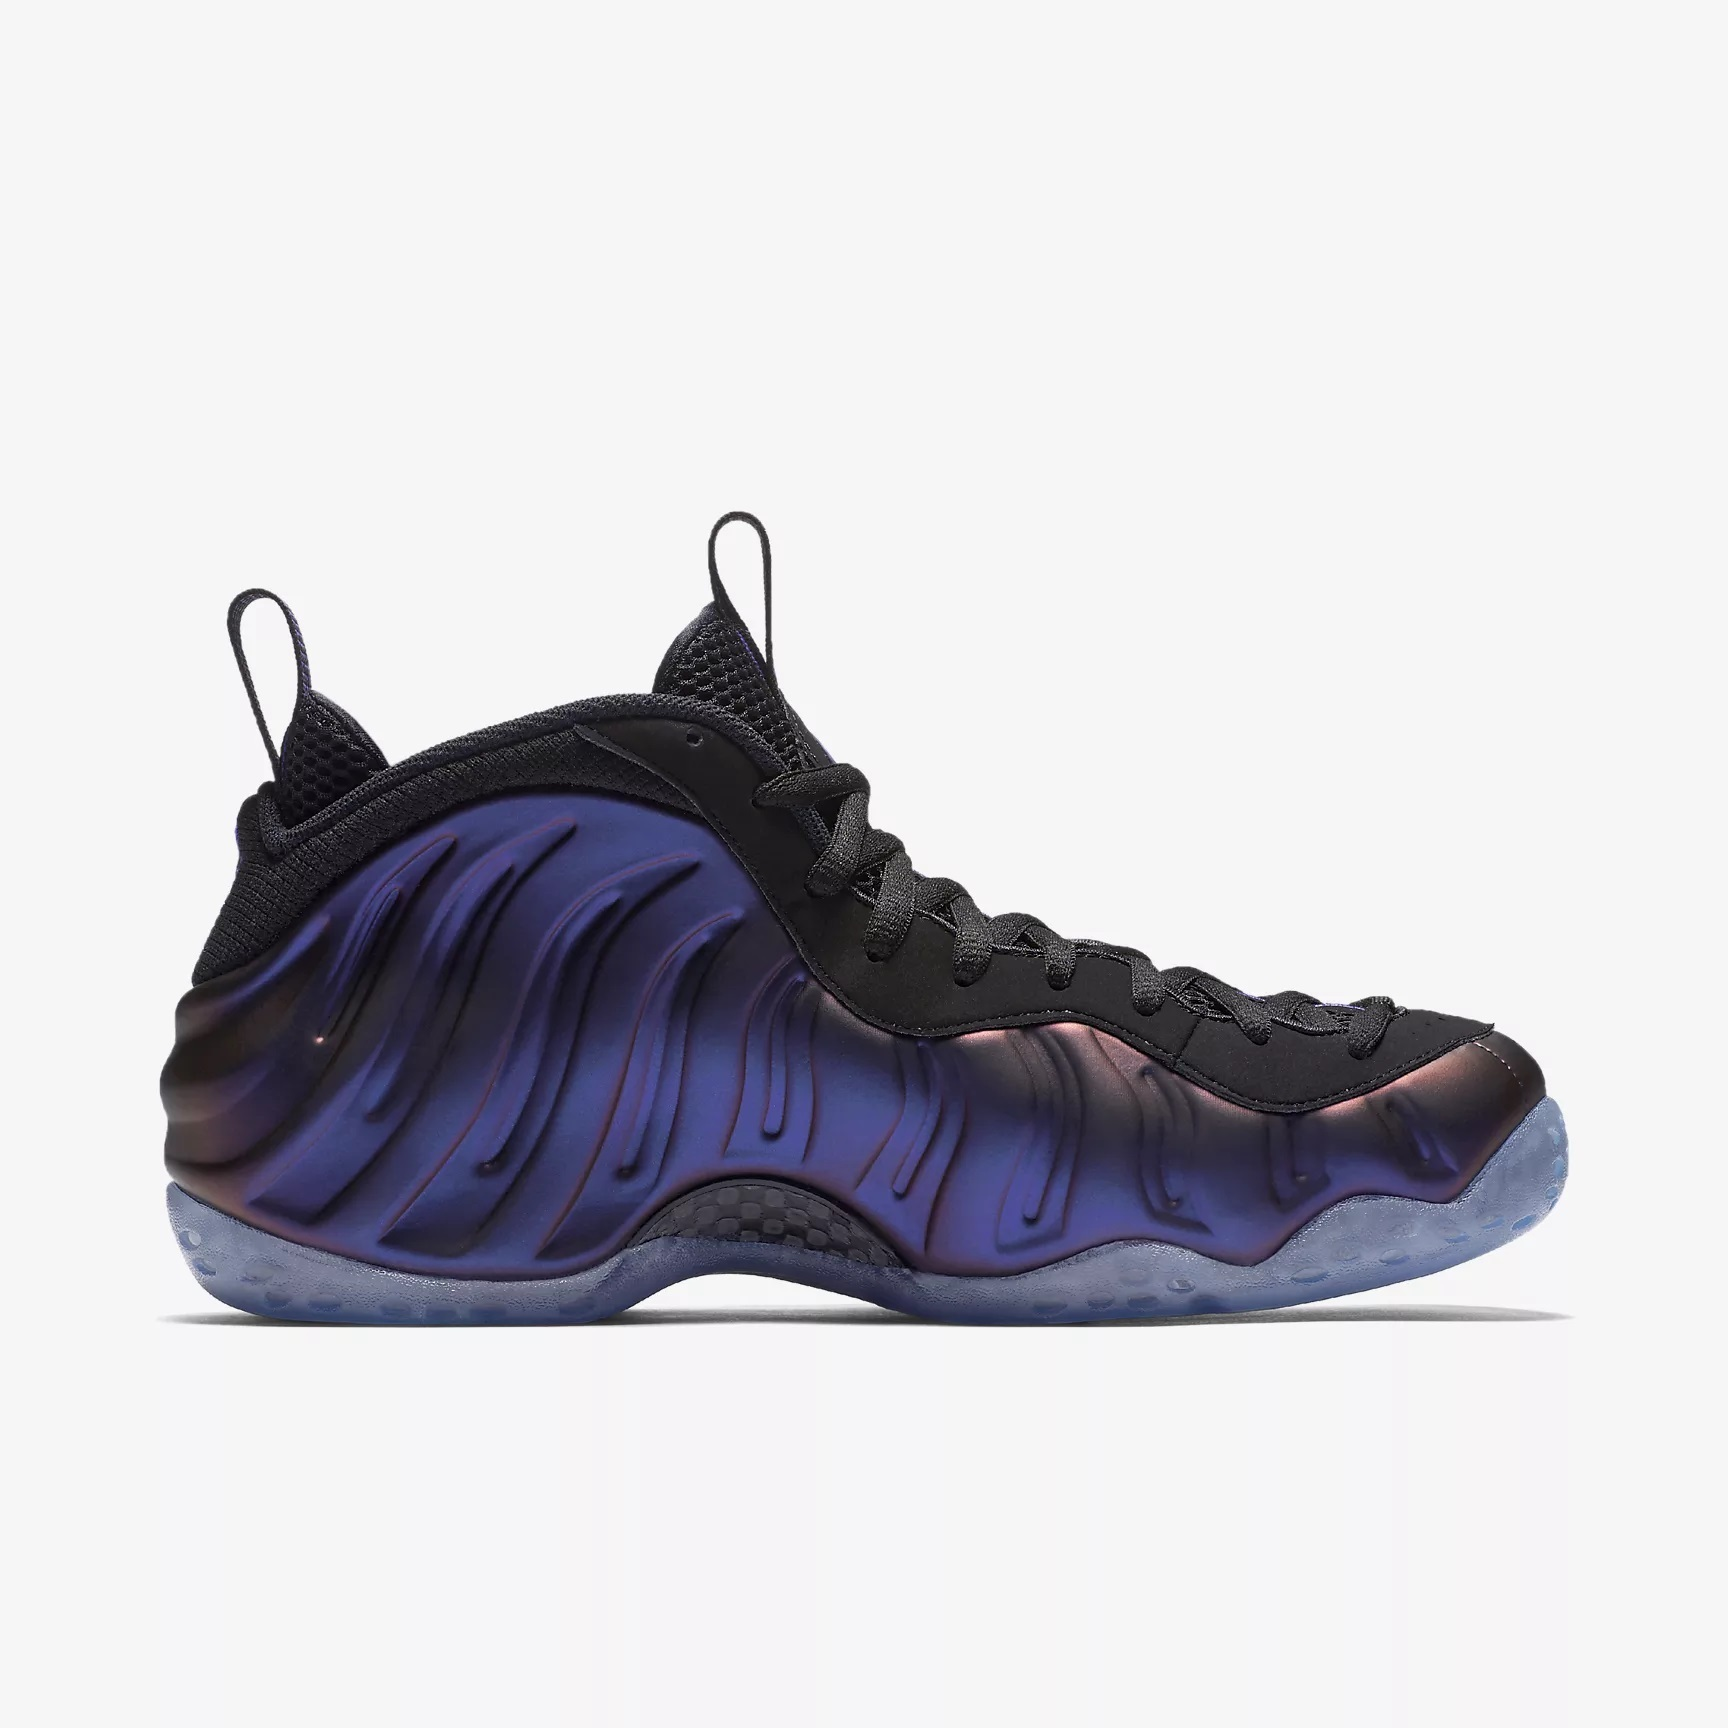 【送料込み】 メンズ NIKE AIR FOAMPOSITE ONE